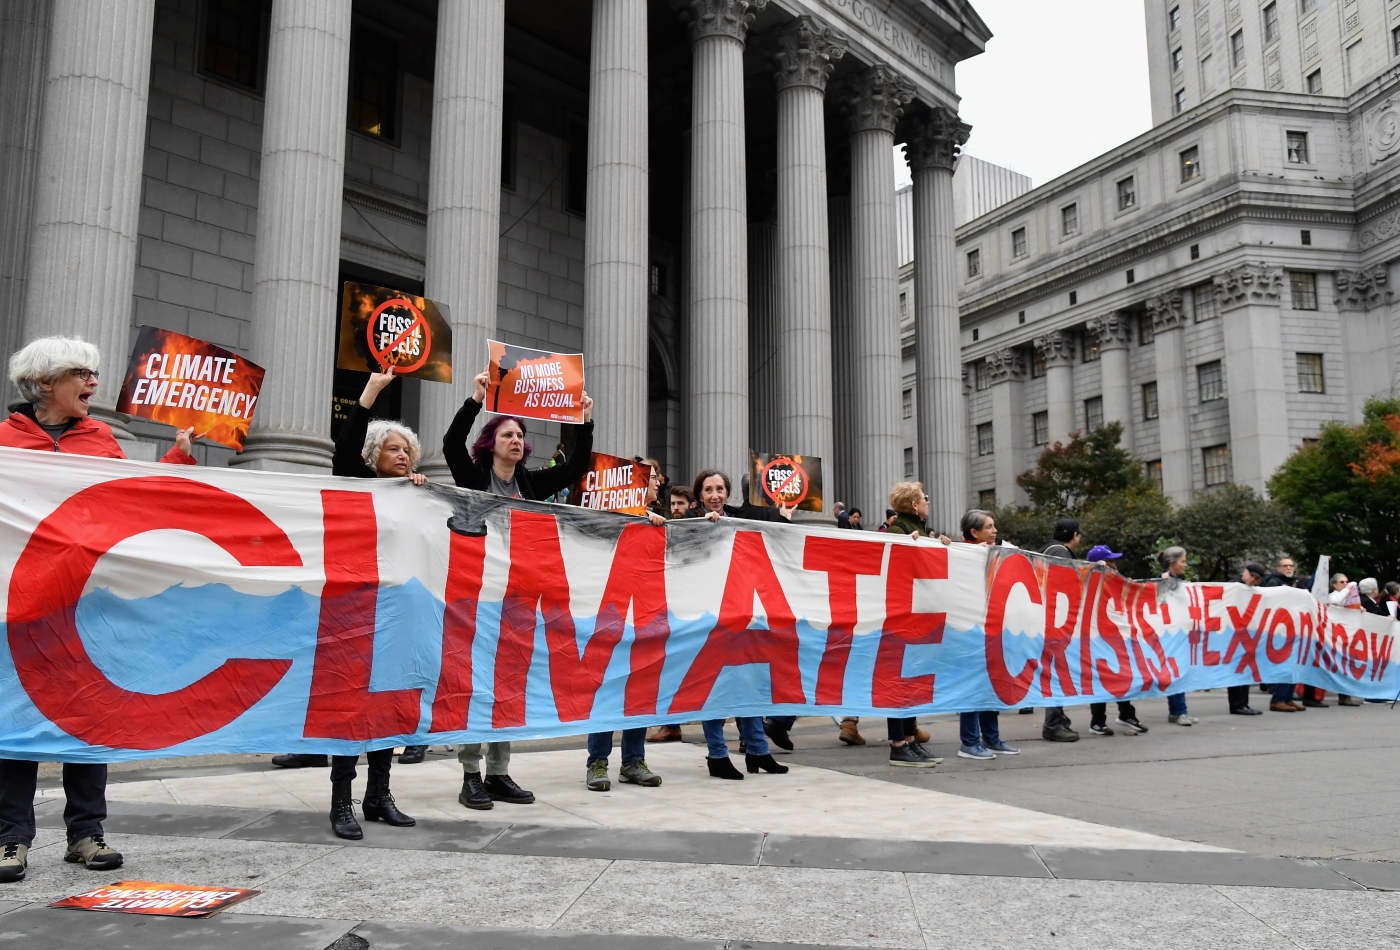 Exxon found not guilty in New York climate-change securities fraud trial, ending 4-year saga